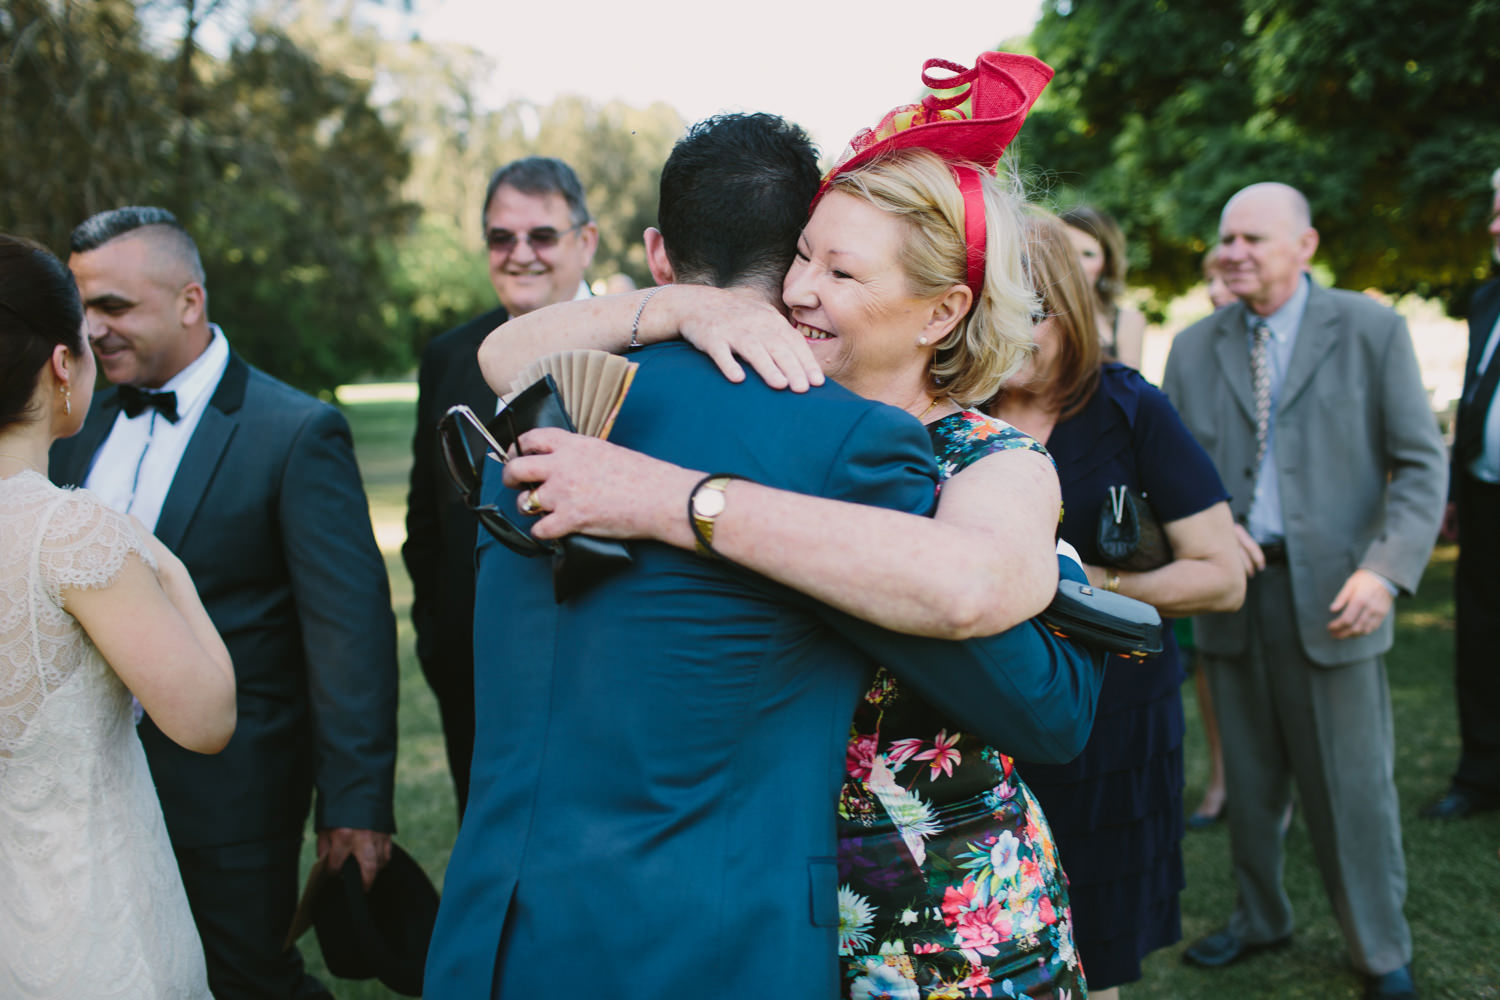 Mother of the groom hugs her son after wedding ceremony